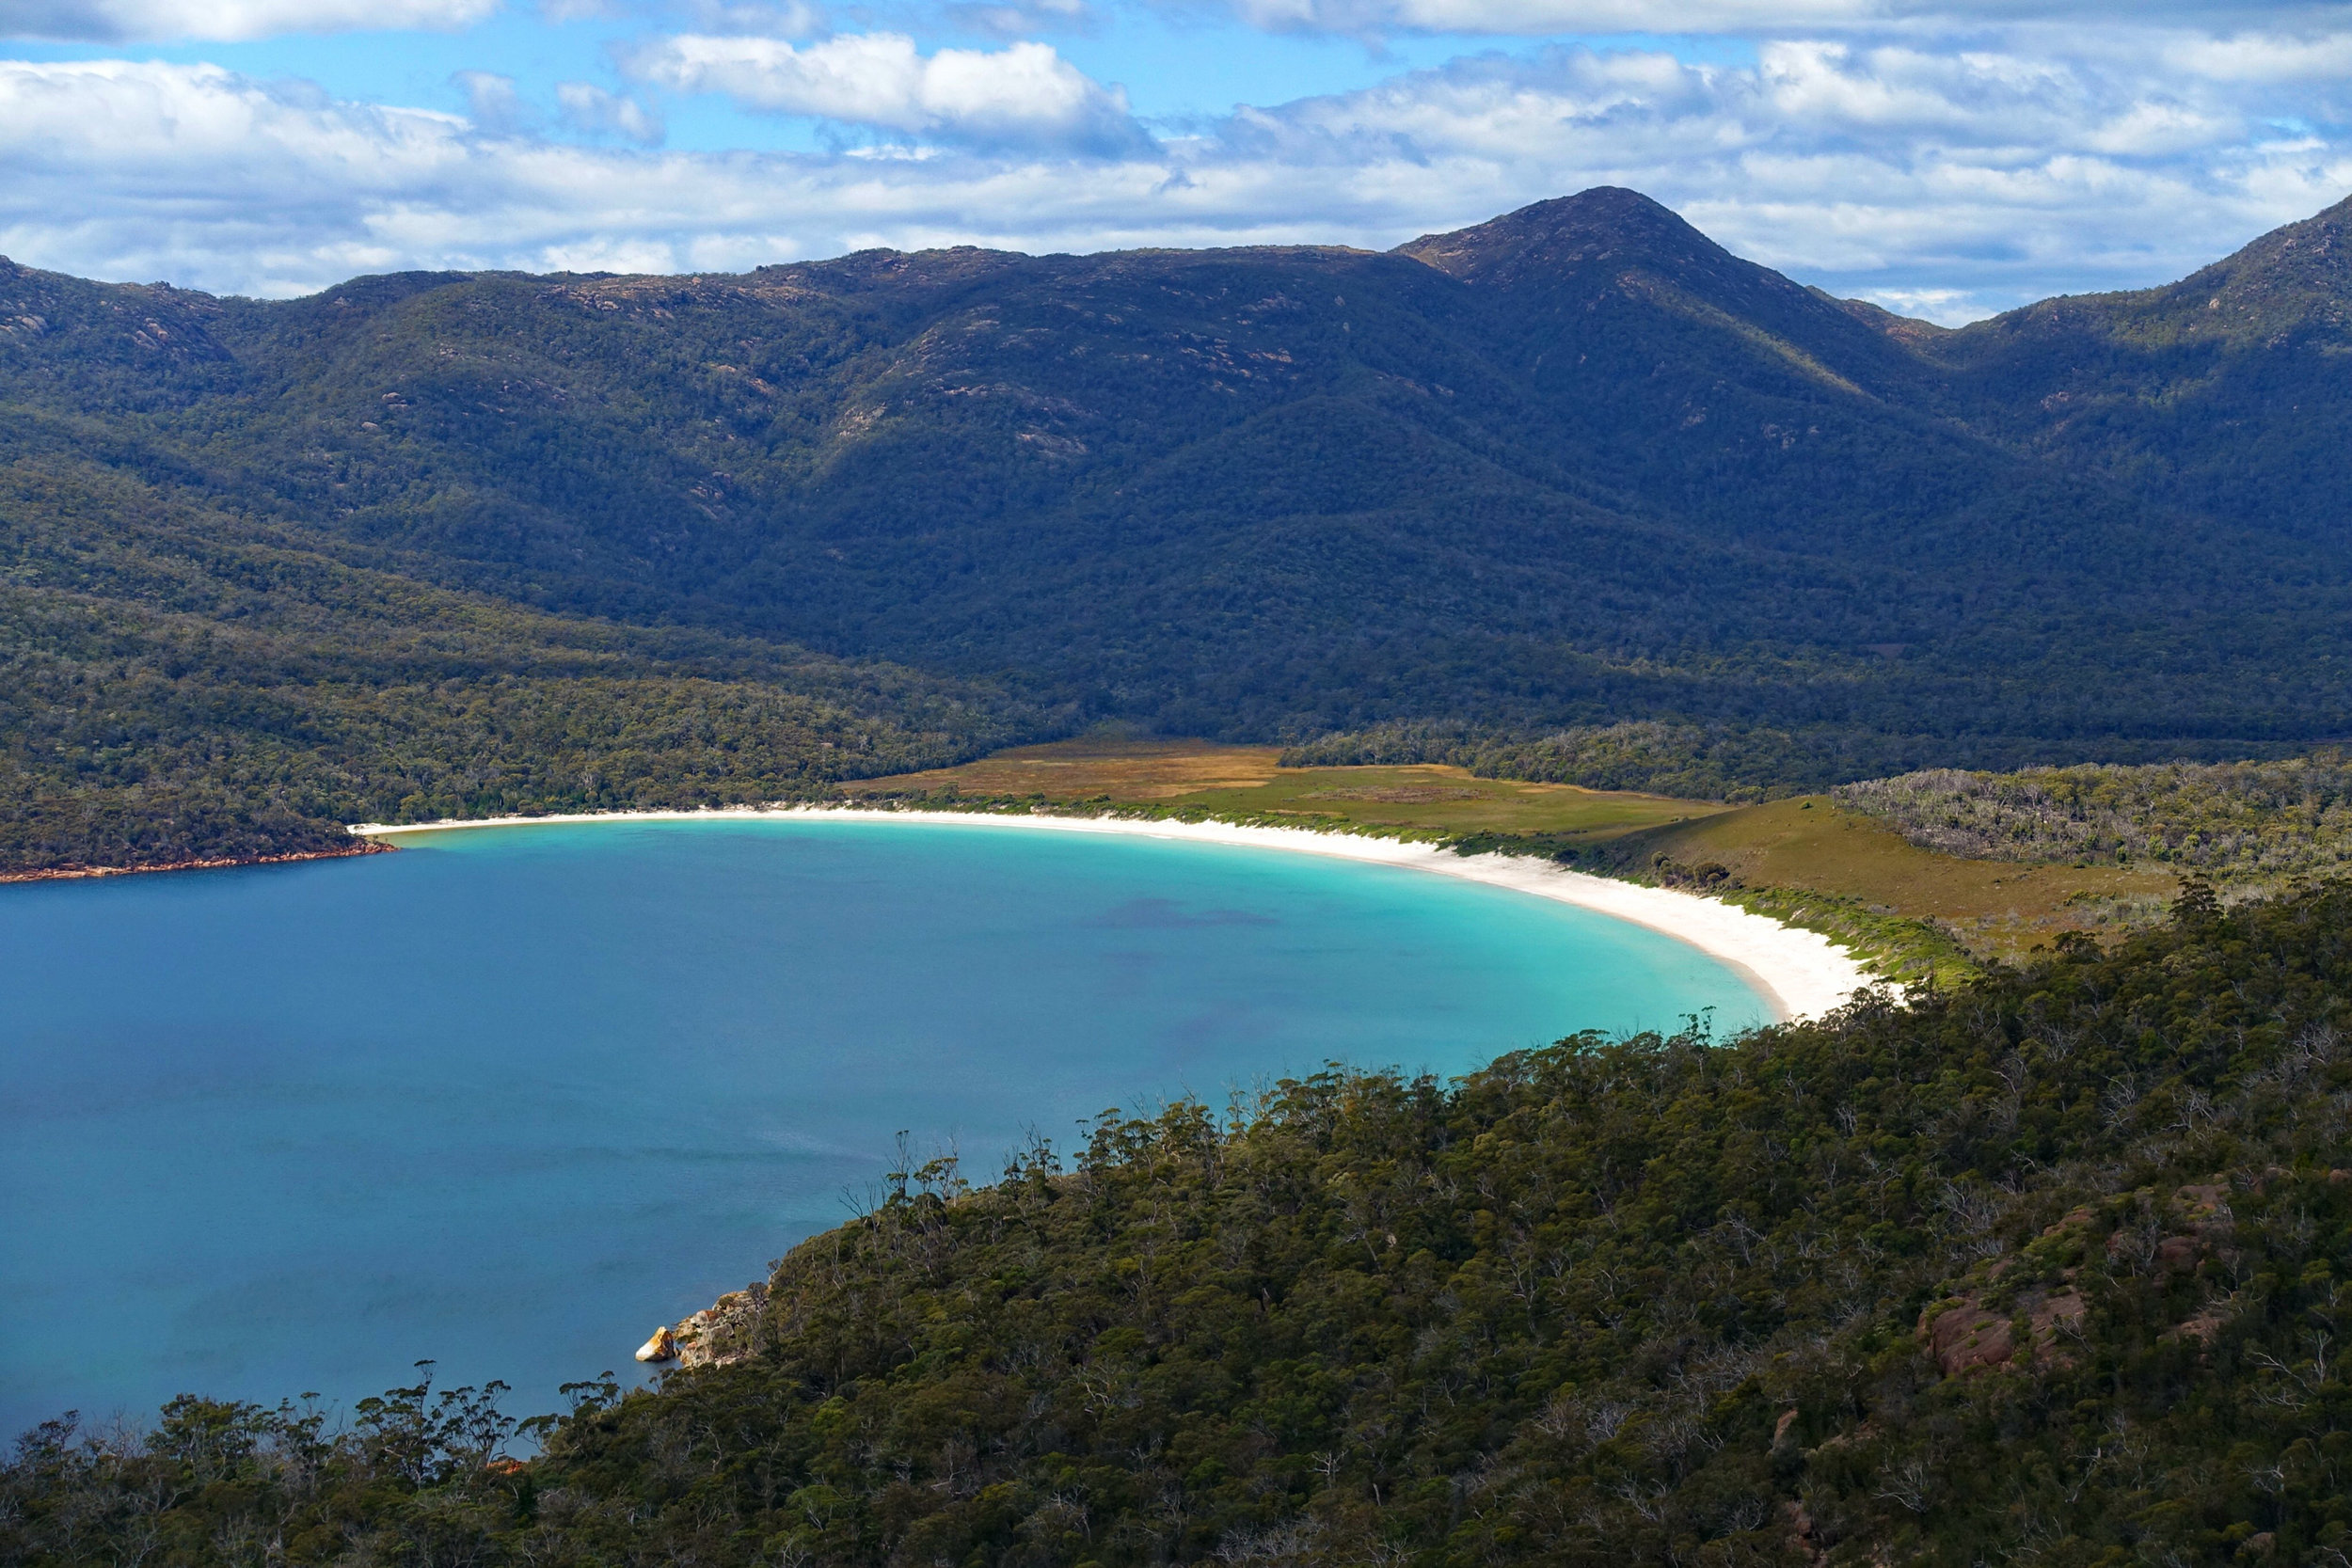 3.)Freycinet National Park - The Wineglass Bay and Hazards Beach loop in Freycinet National Park, has some gorgeous spots for camping. While the track is popular with day-walkers, taking the longer routes mean you can enjoy the pristine beaches to yourself. For any multi-day hikes, make sure you carry plenty of water with you.